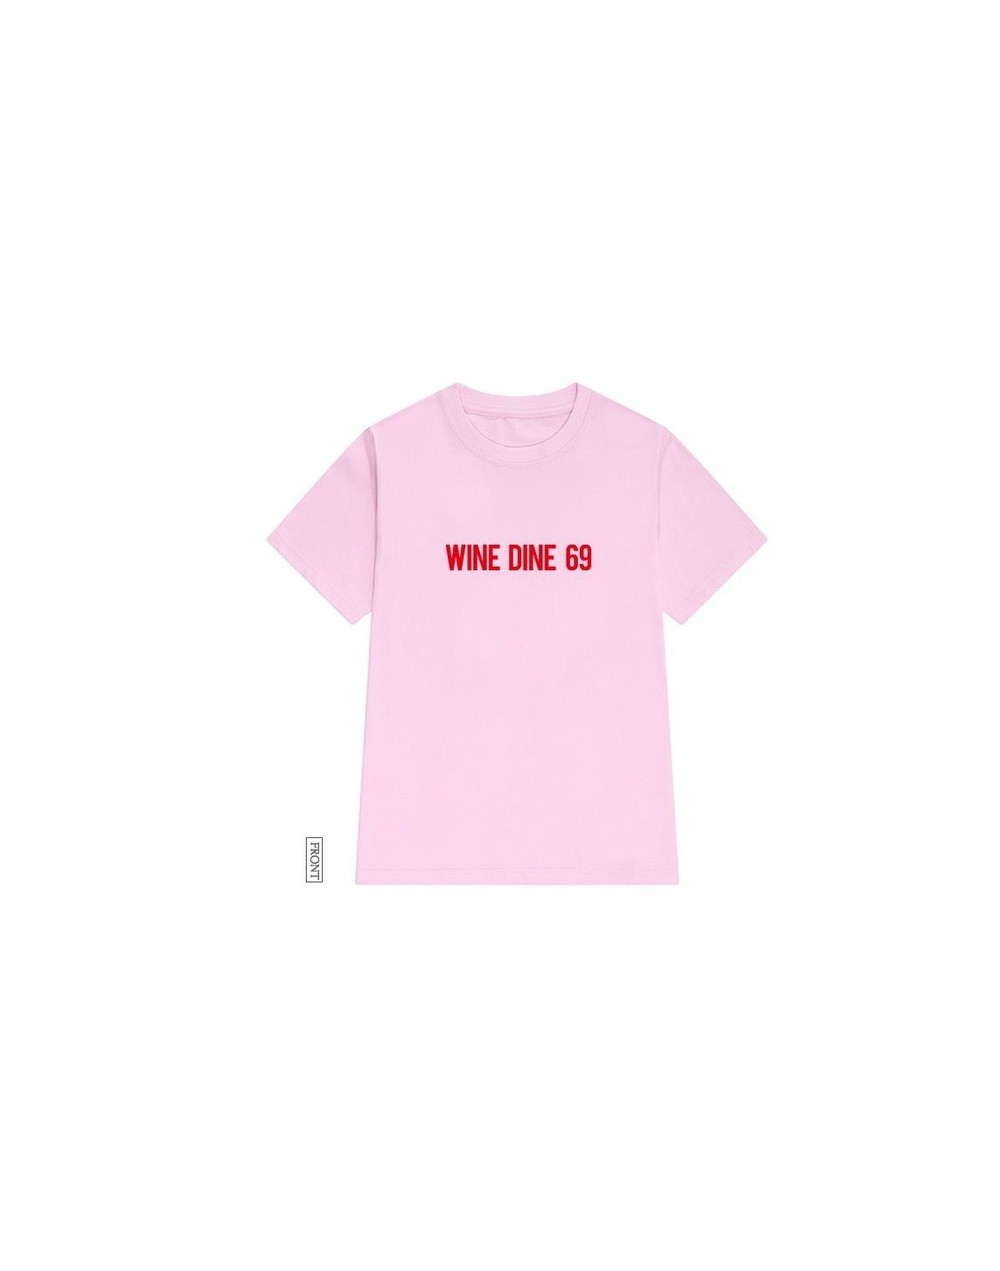 wine dine 69 red Print Women tshirt Cotton Casual Funny t shirt For Lady Yong Girl Top Tee Hipster Tumblr ins Drop Ship S-48...